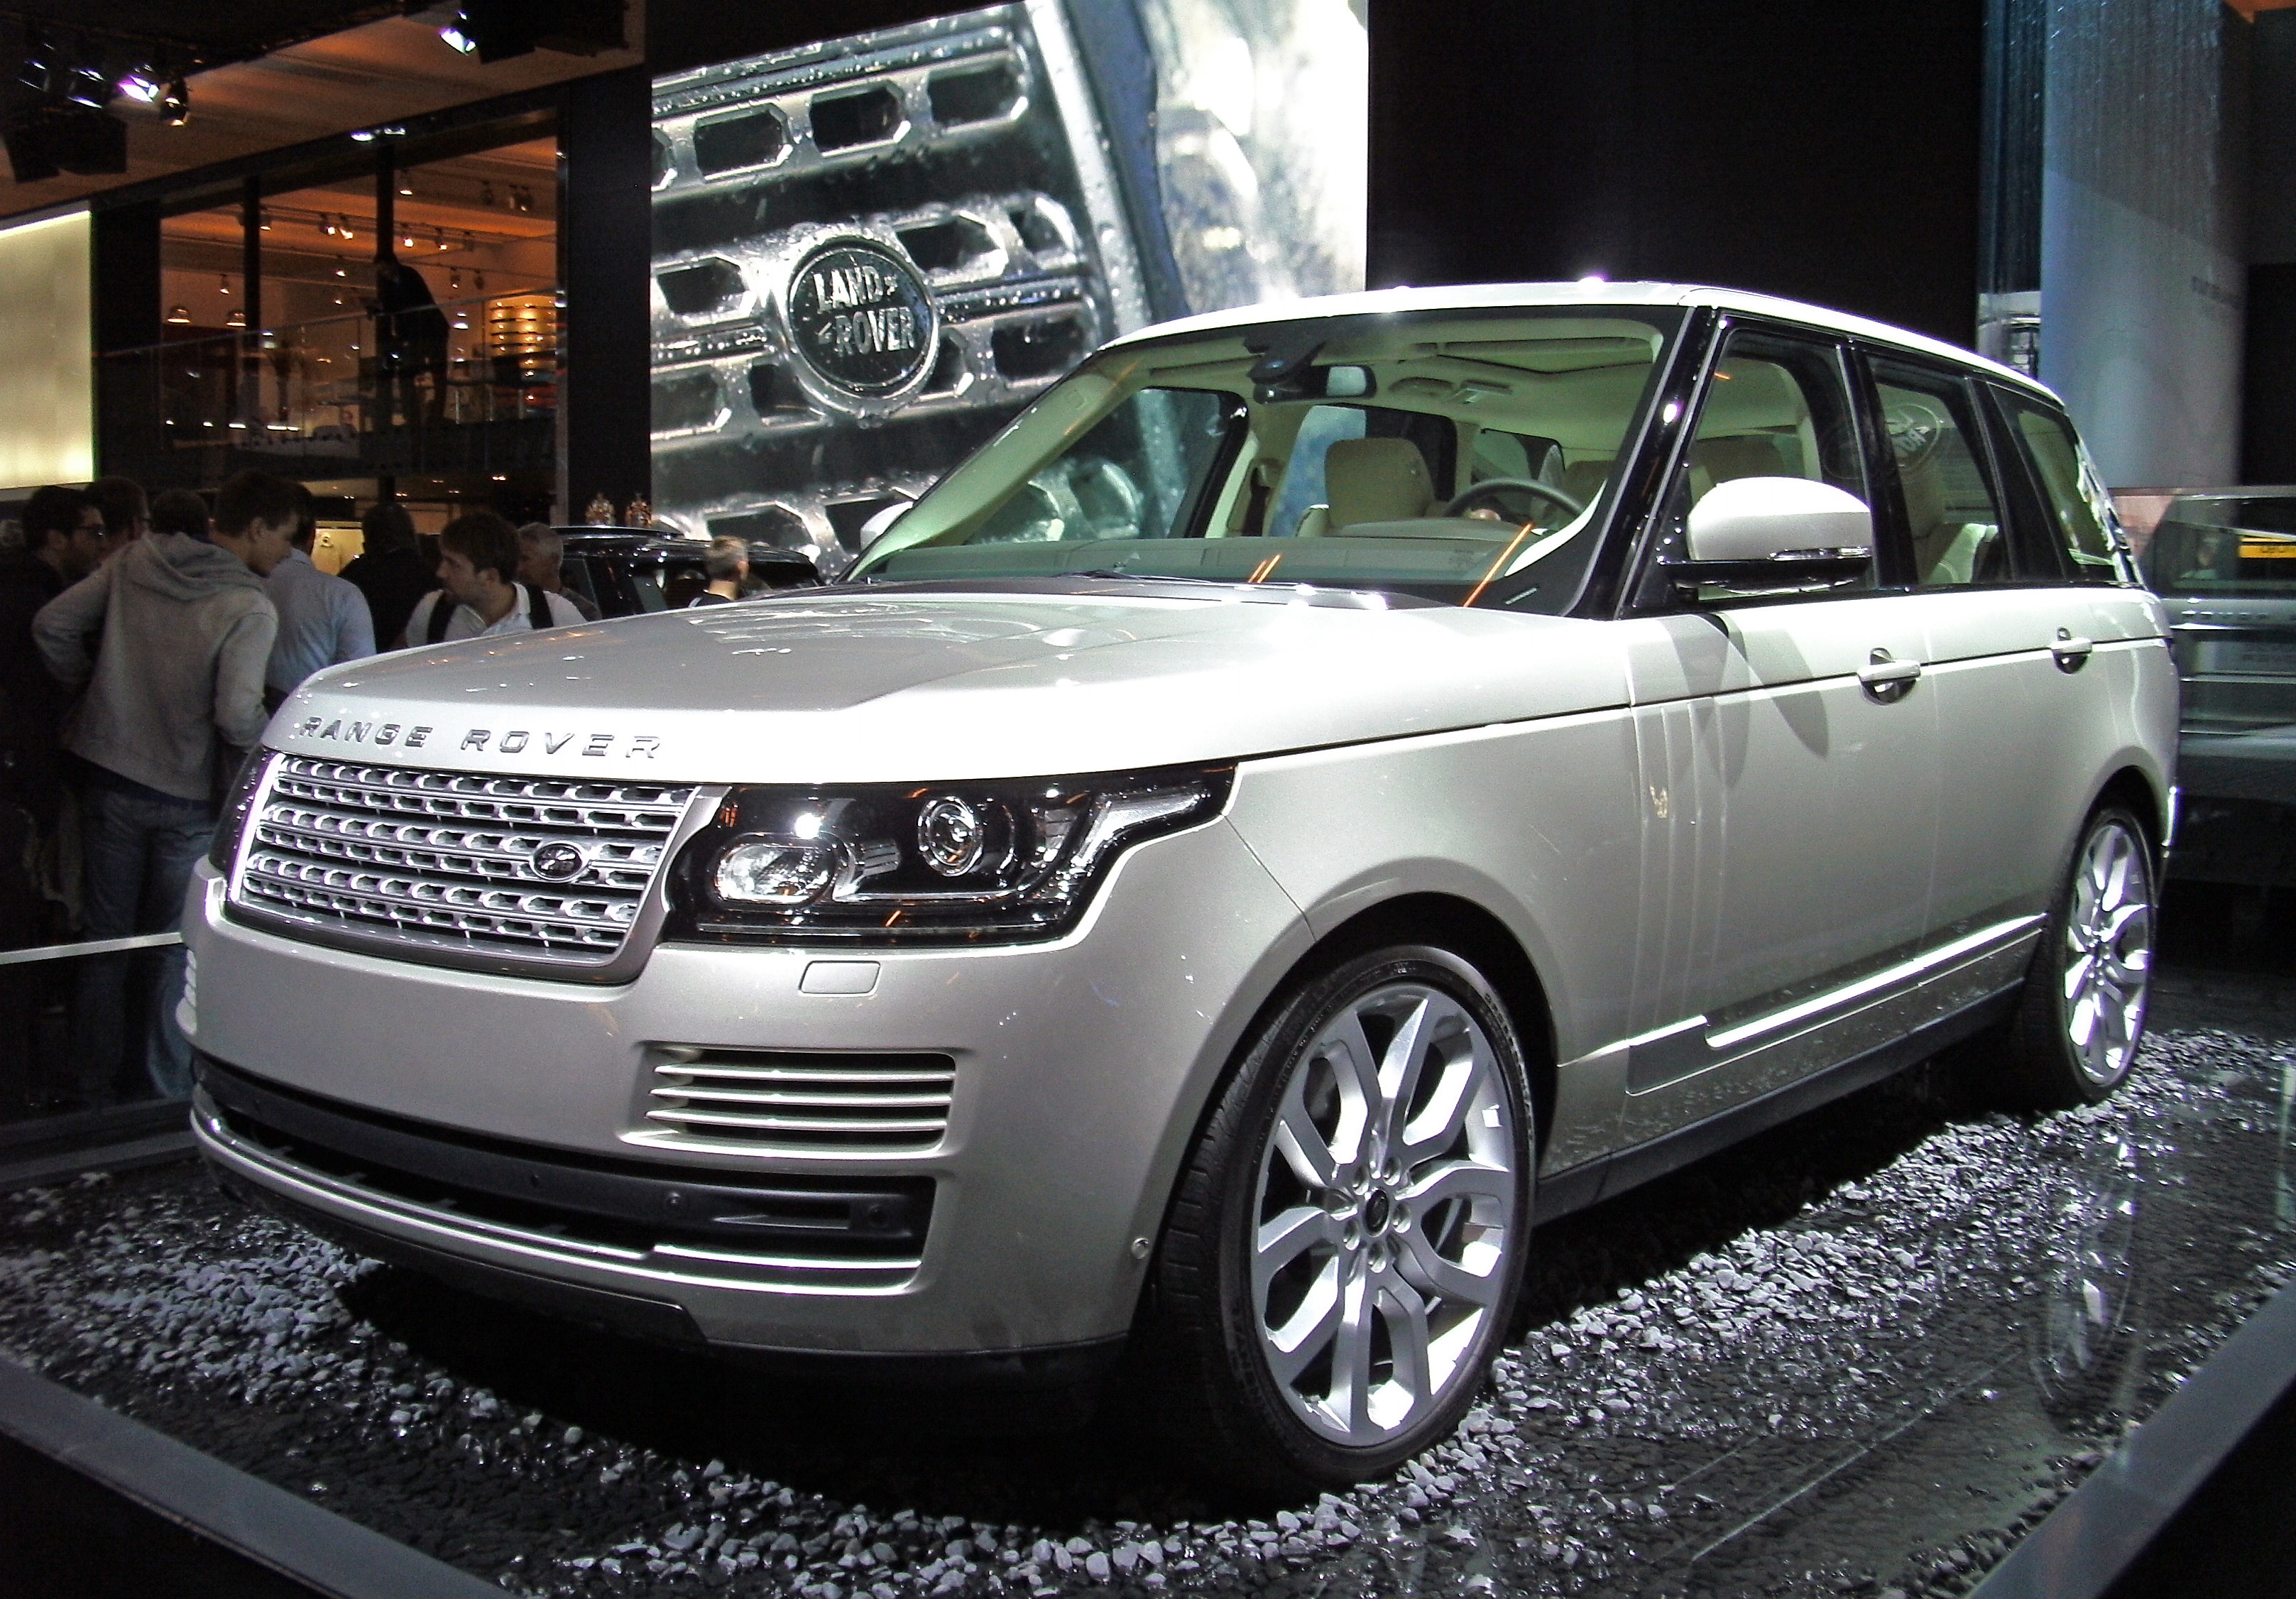 2012 Land rover Range rover iii – pictures, information and specs